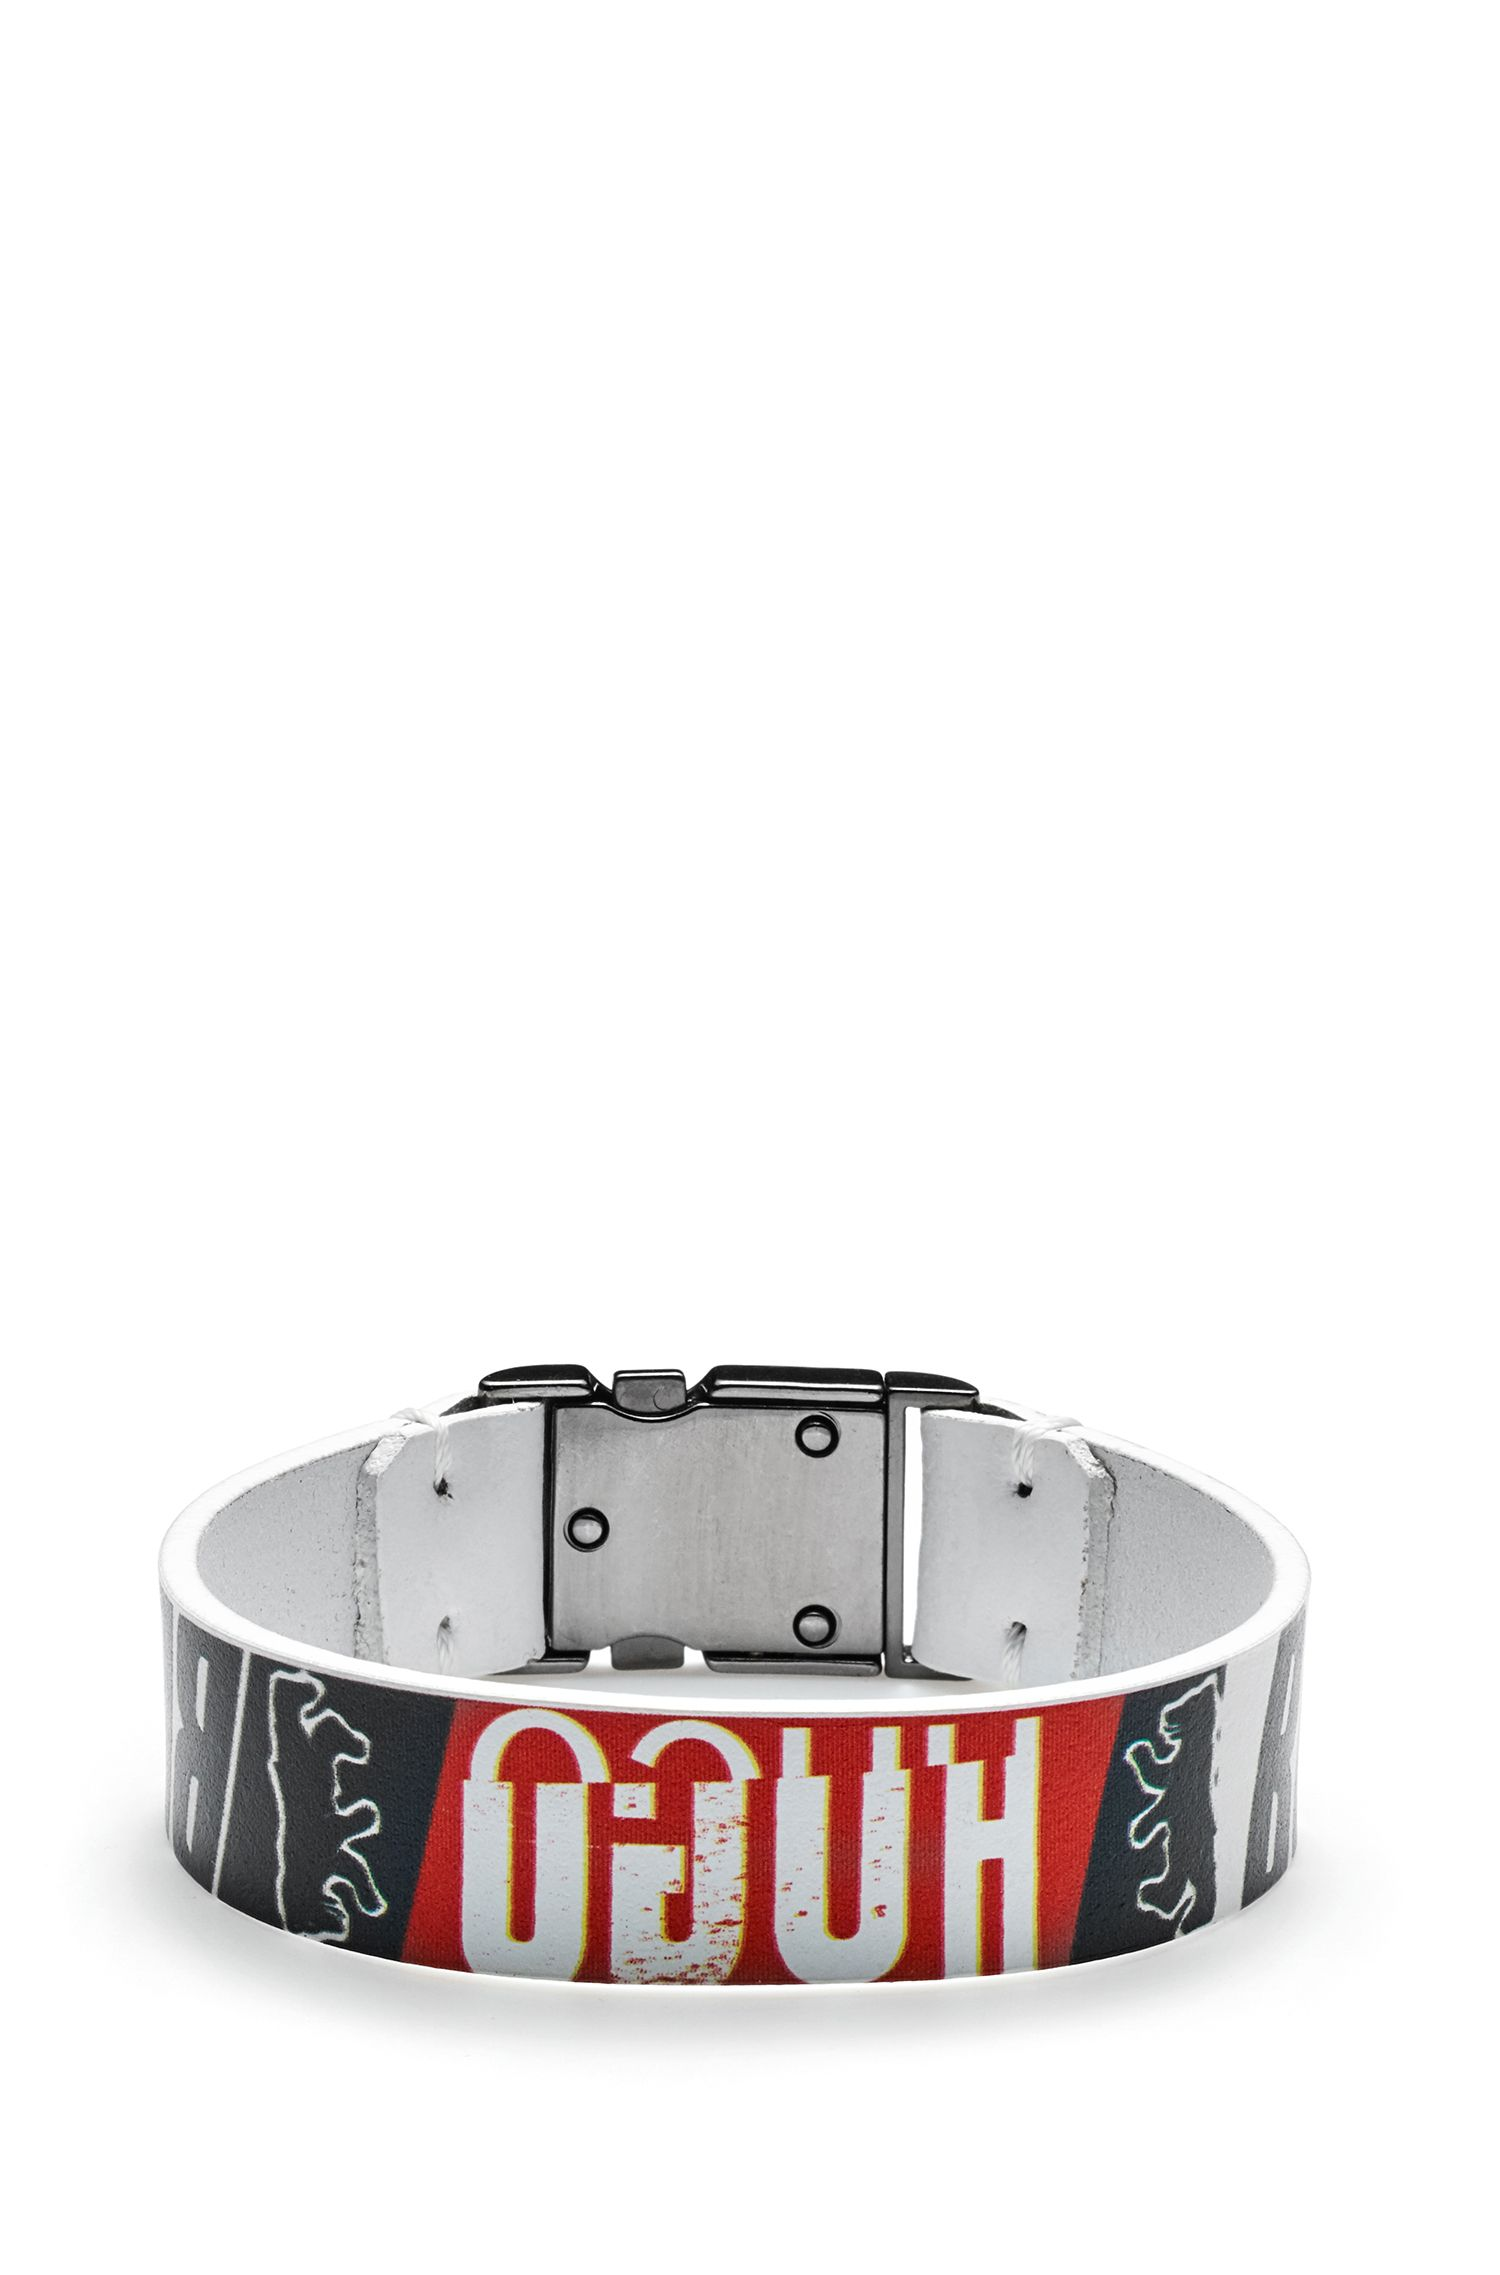 Italian-leather cuff with printed bear motif, Patterned